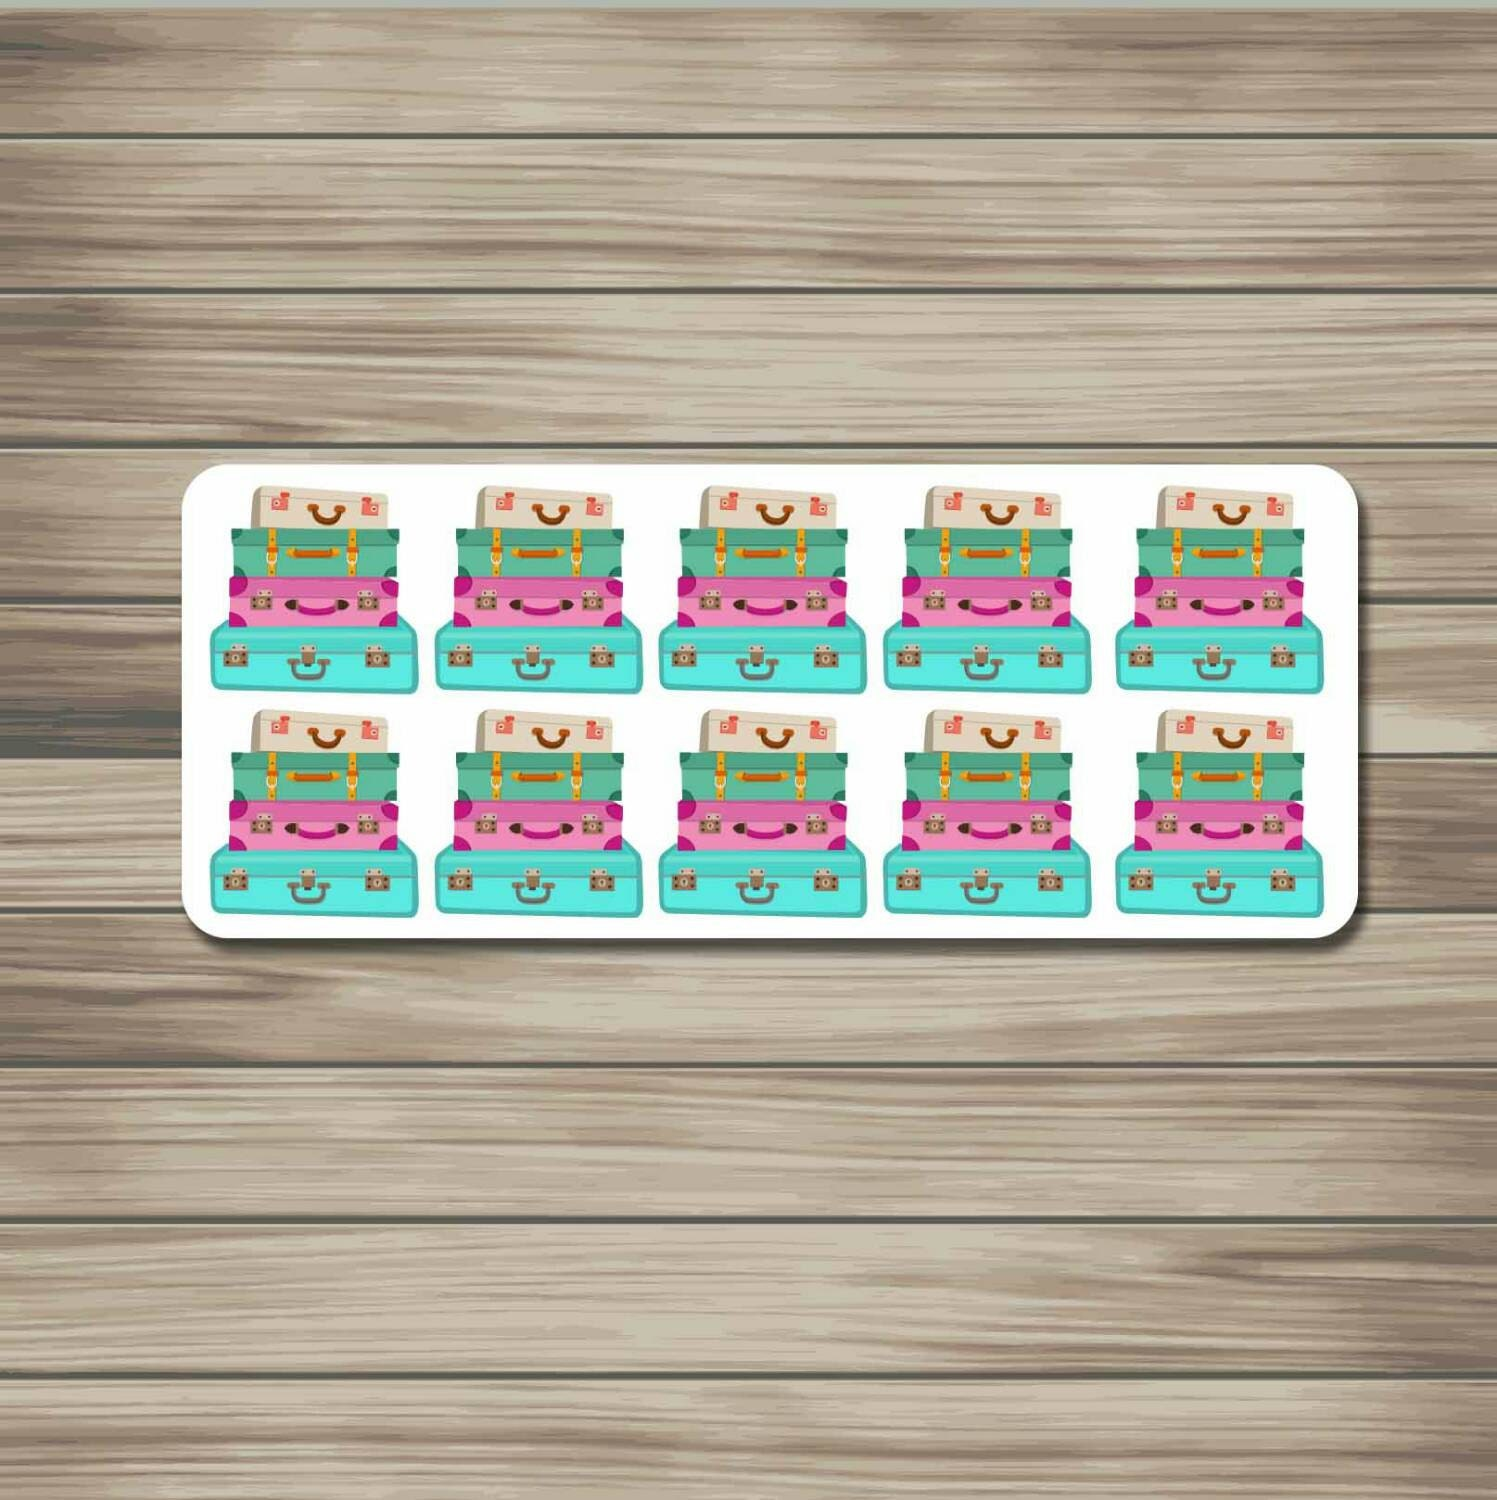 Travel Suitcase Luggage Planner Stickers By